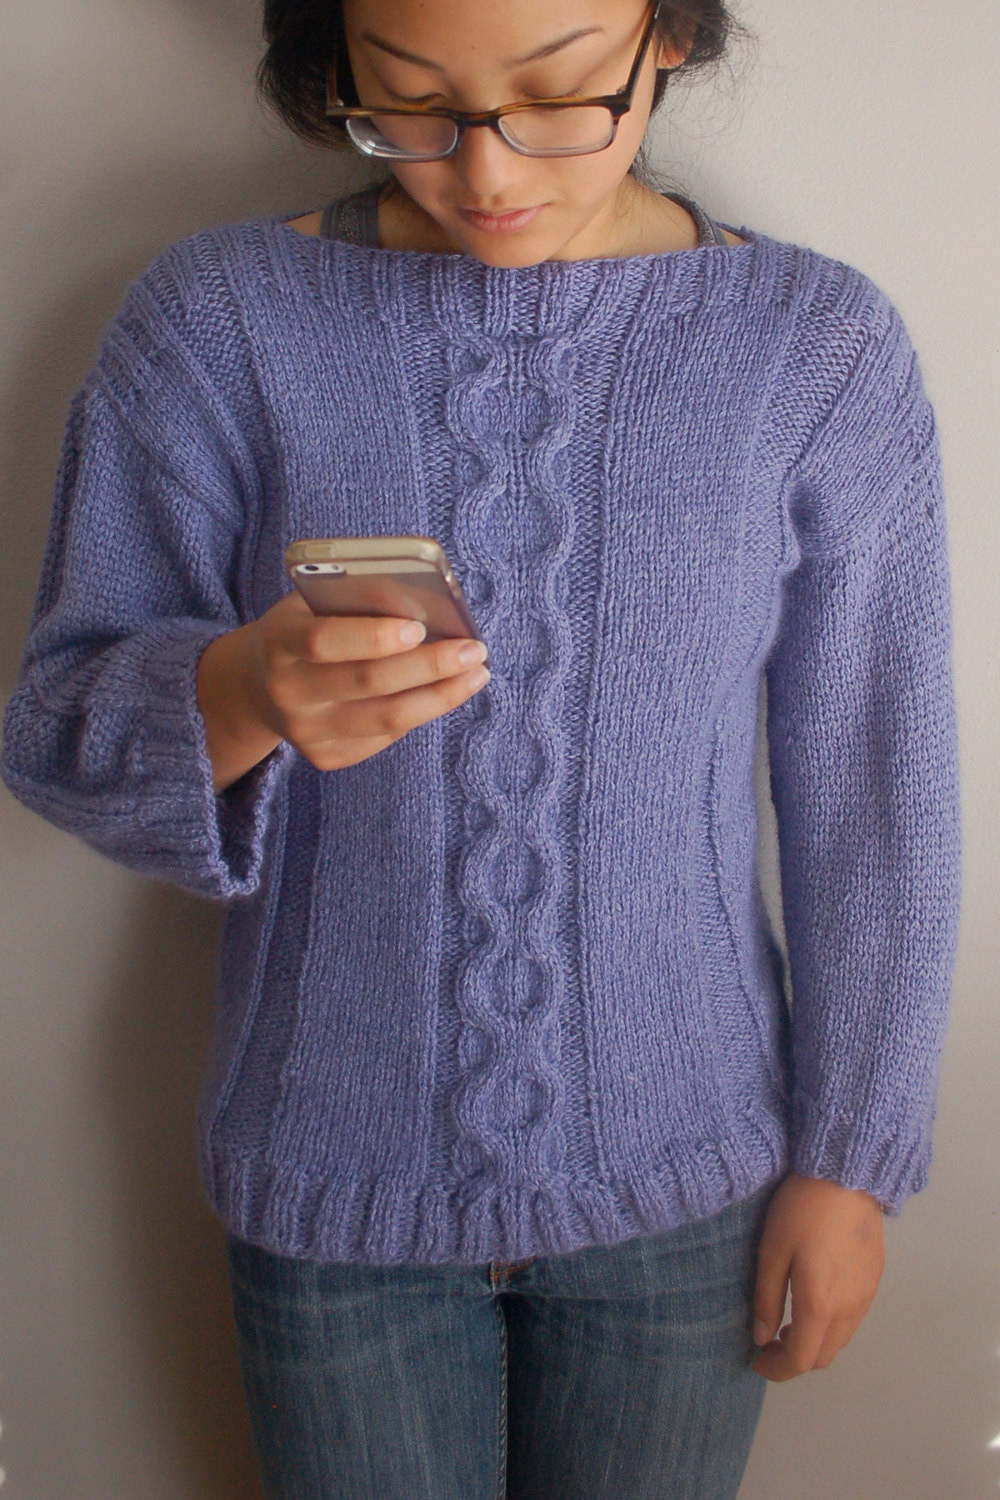 "Unique Cable Sweater Knitting Pattern Easy to Knit Pullover Cable Knit Sweater Pattern Of New Lace & Cable Sweater Dk Wool 30"" 40"" Knitting Cable Knit Sweater Pattern"